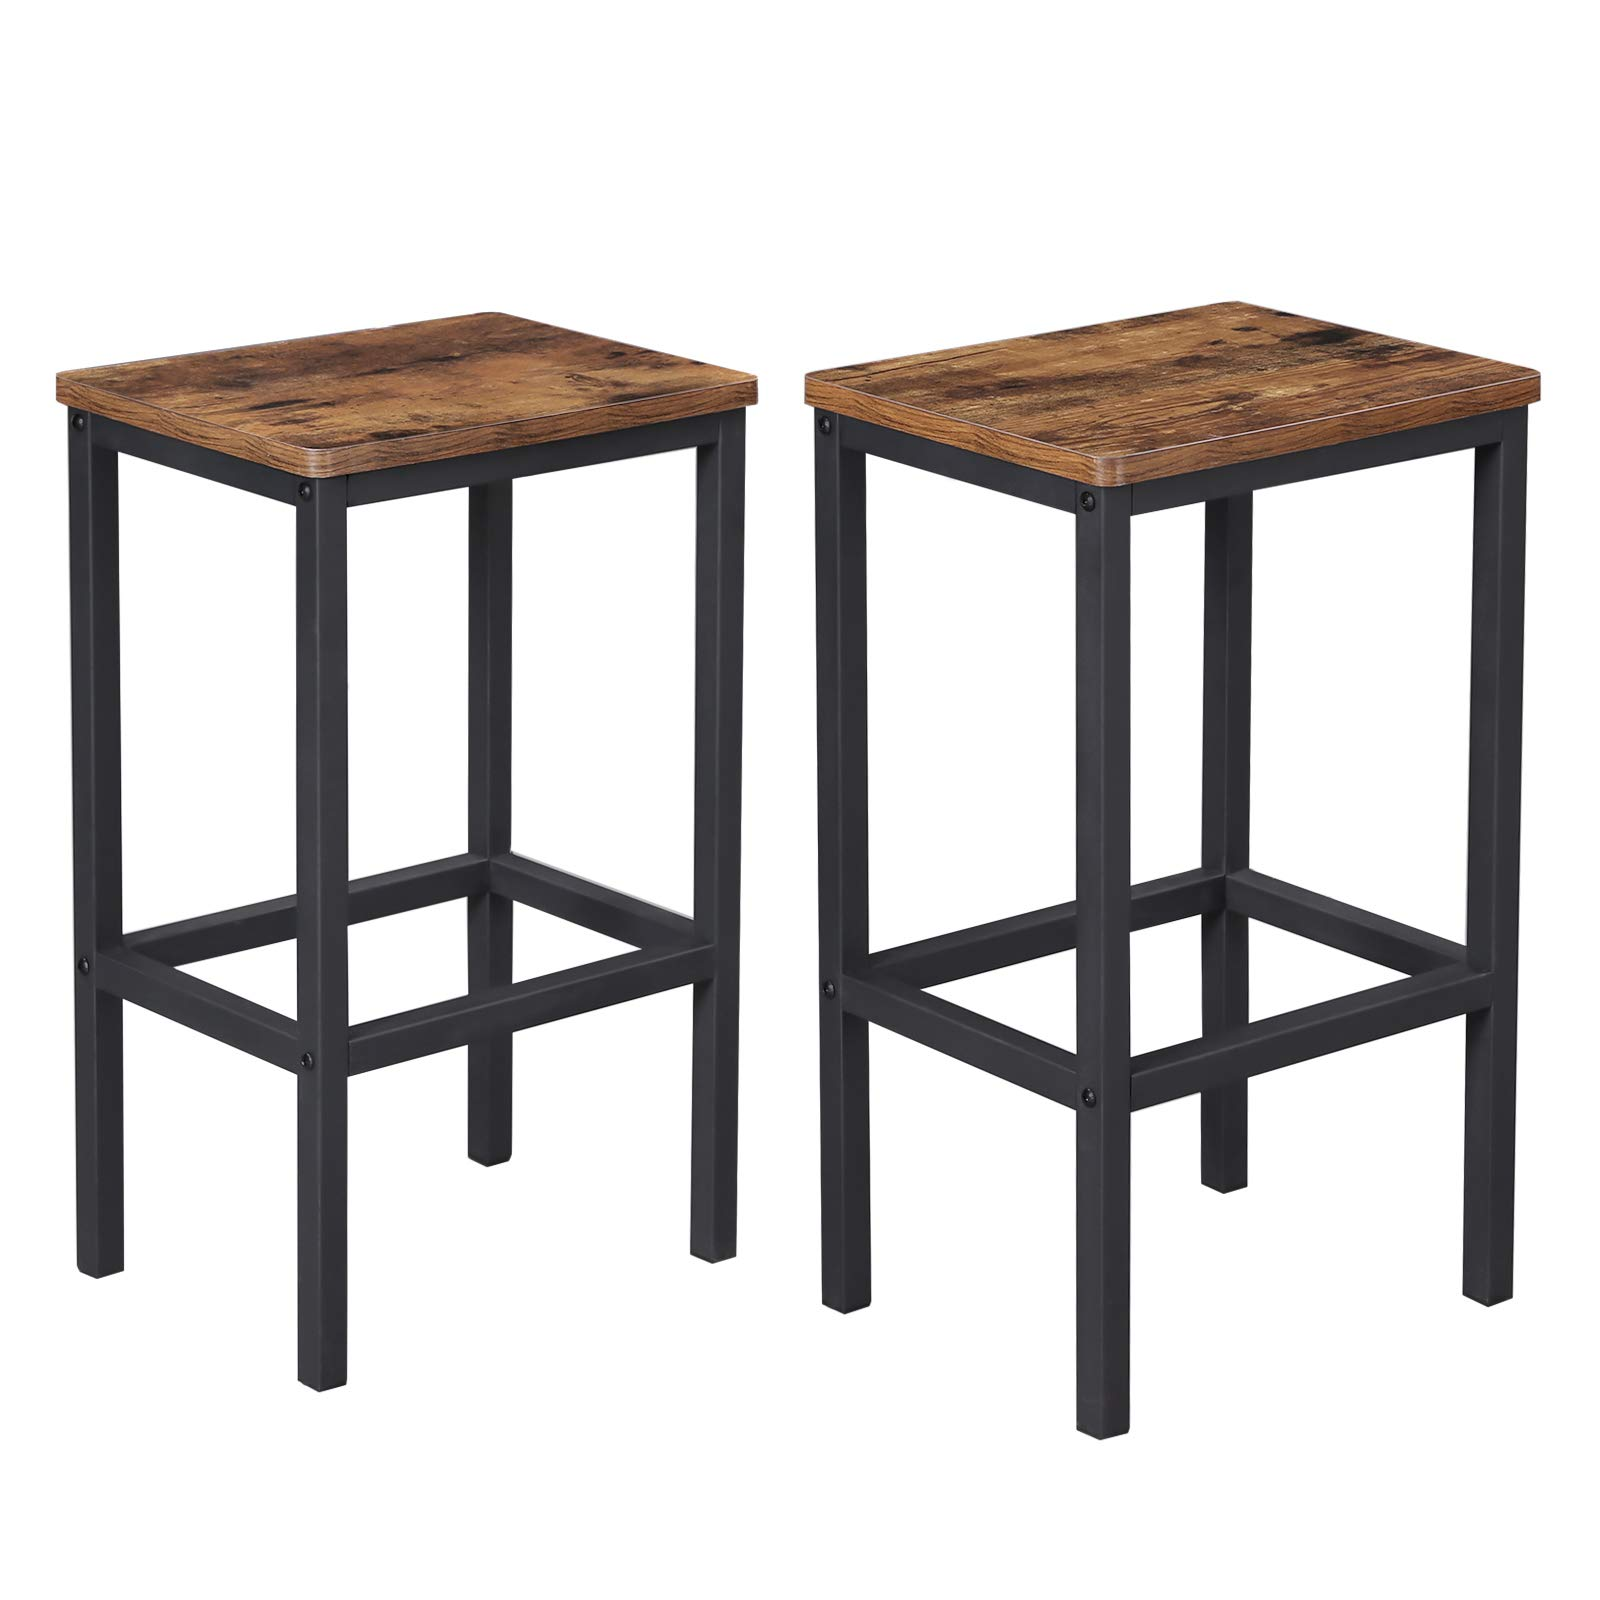 VASAGLE ALINRU Bar Stools, Set of 2 Bar Chairs, Kitchen Breakfast Bar Stools with Footrest, Industrial in Living Room, Party Room, Rustic Brown ULBC65X by VASAGLE